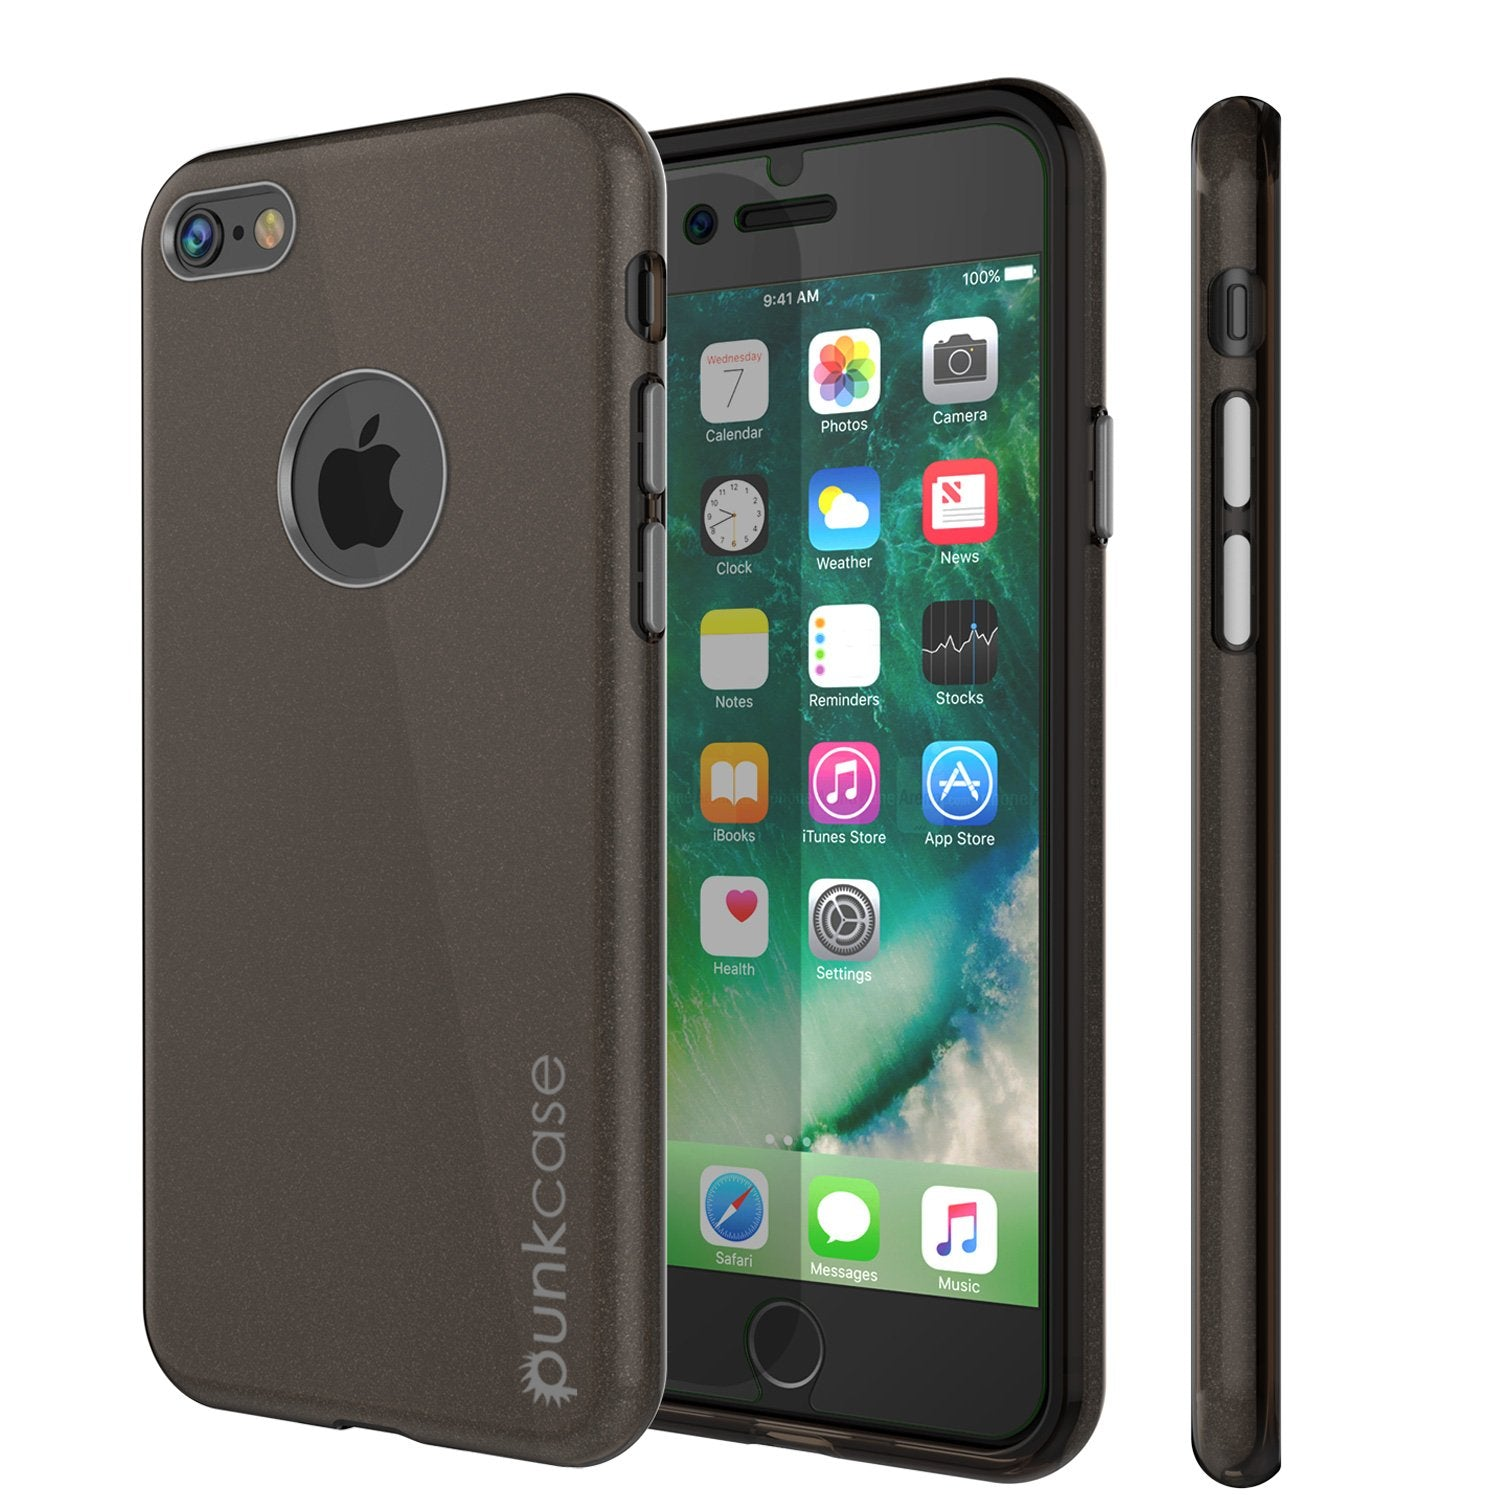 iPhone 8 Case, Punkcase Galactic 2.0 Series Ultra Slim Protective Armor TPU Cover [Black/Grey]